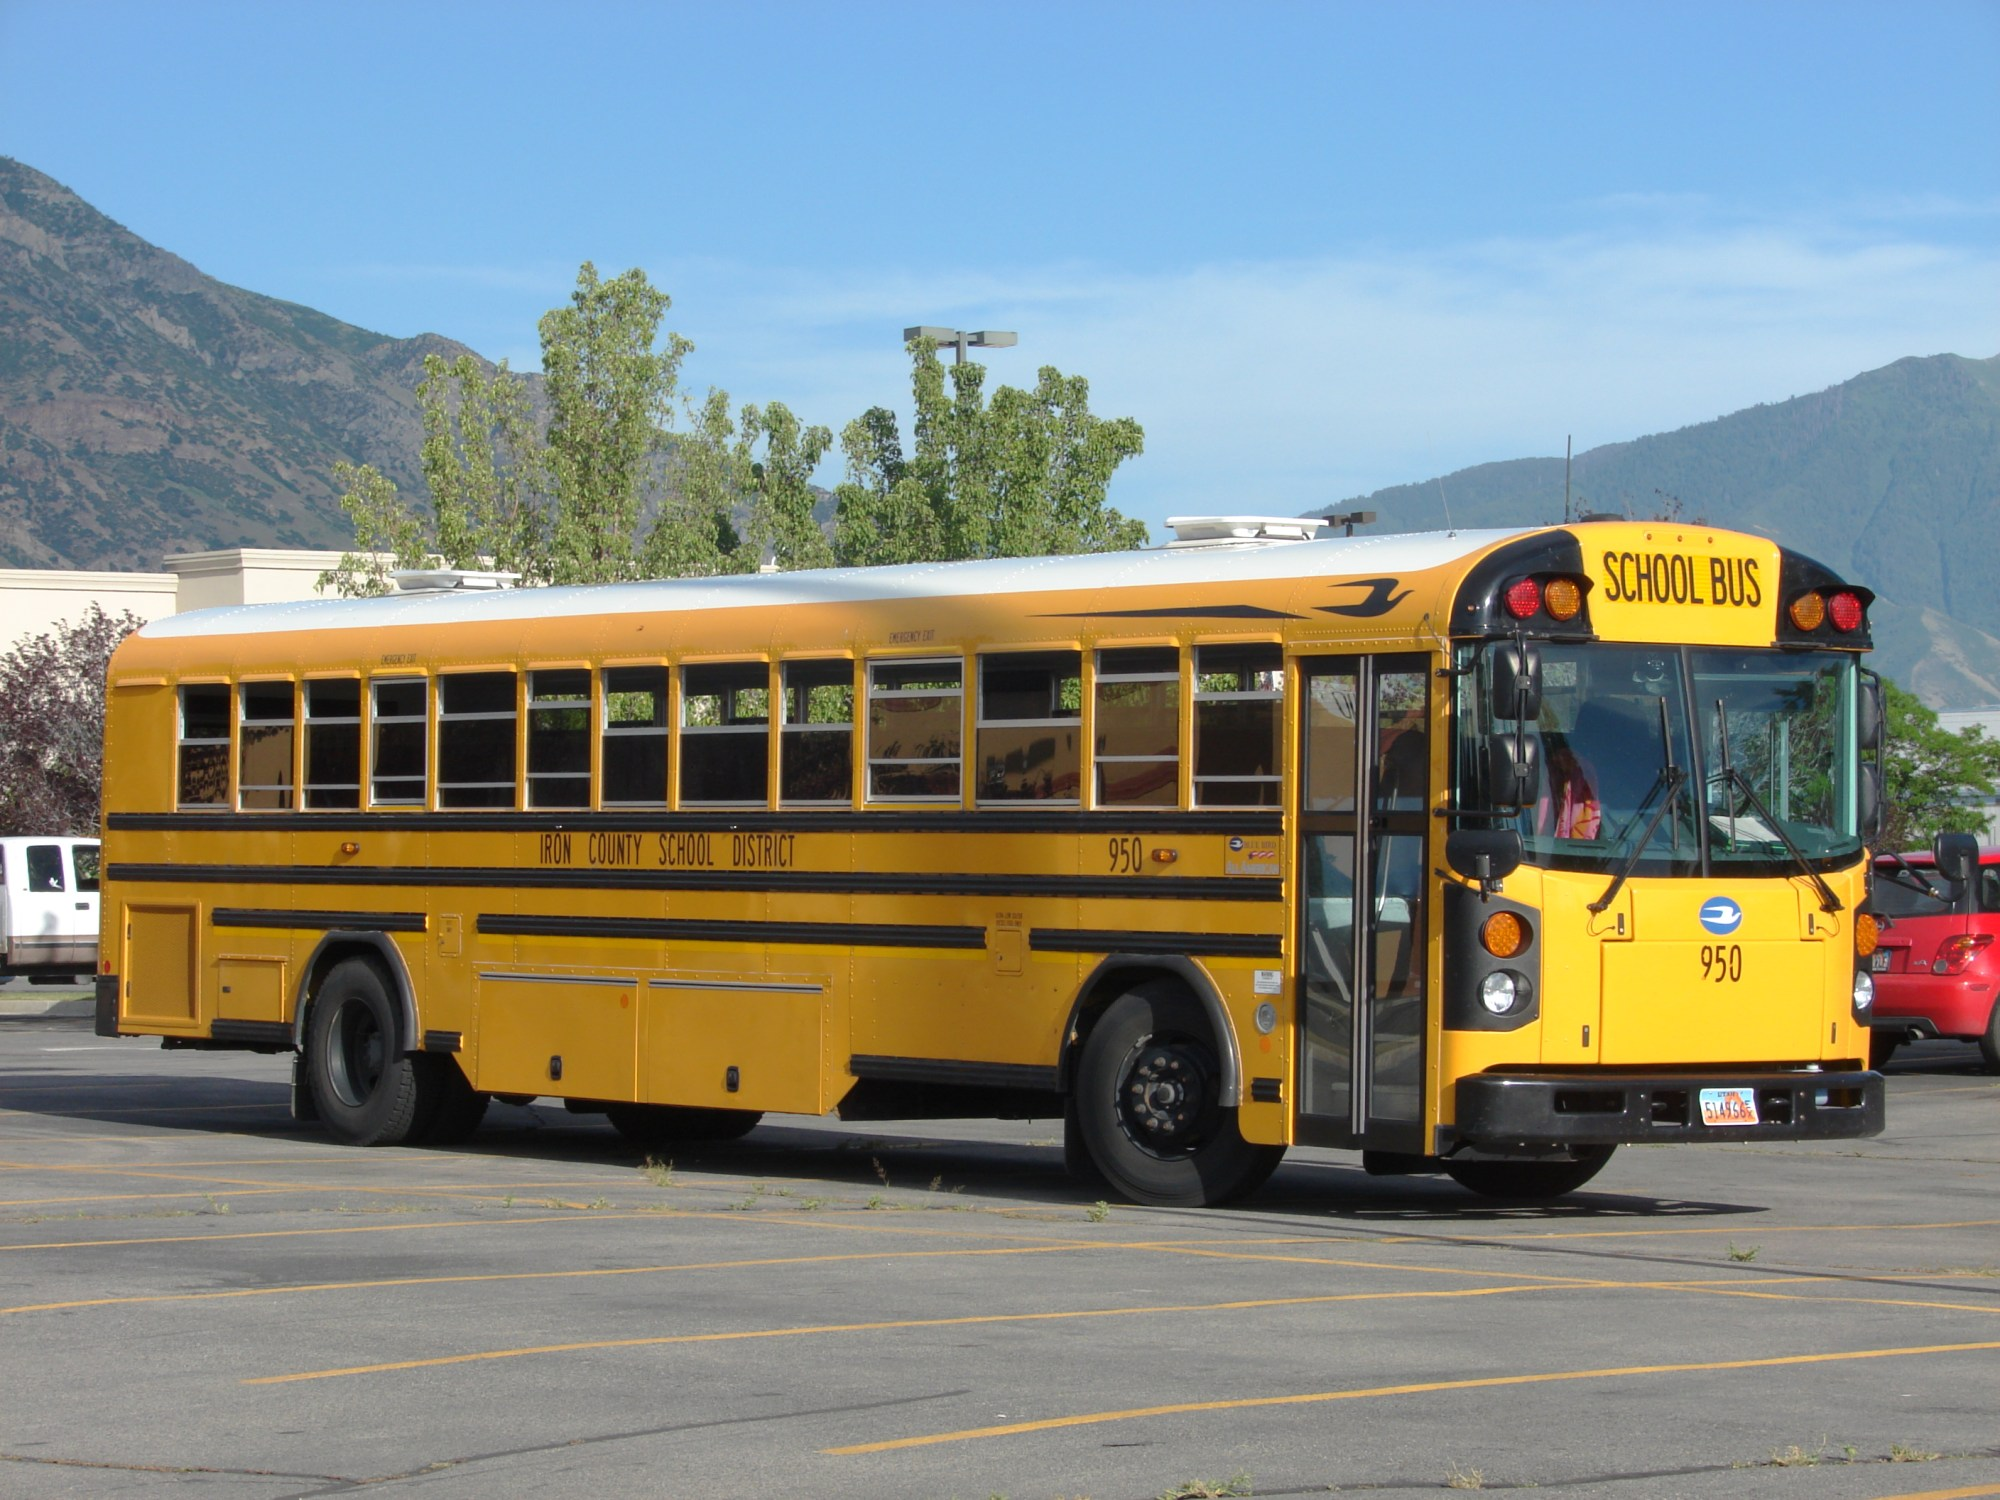 hight resolution of iron county school district school bus jpg